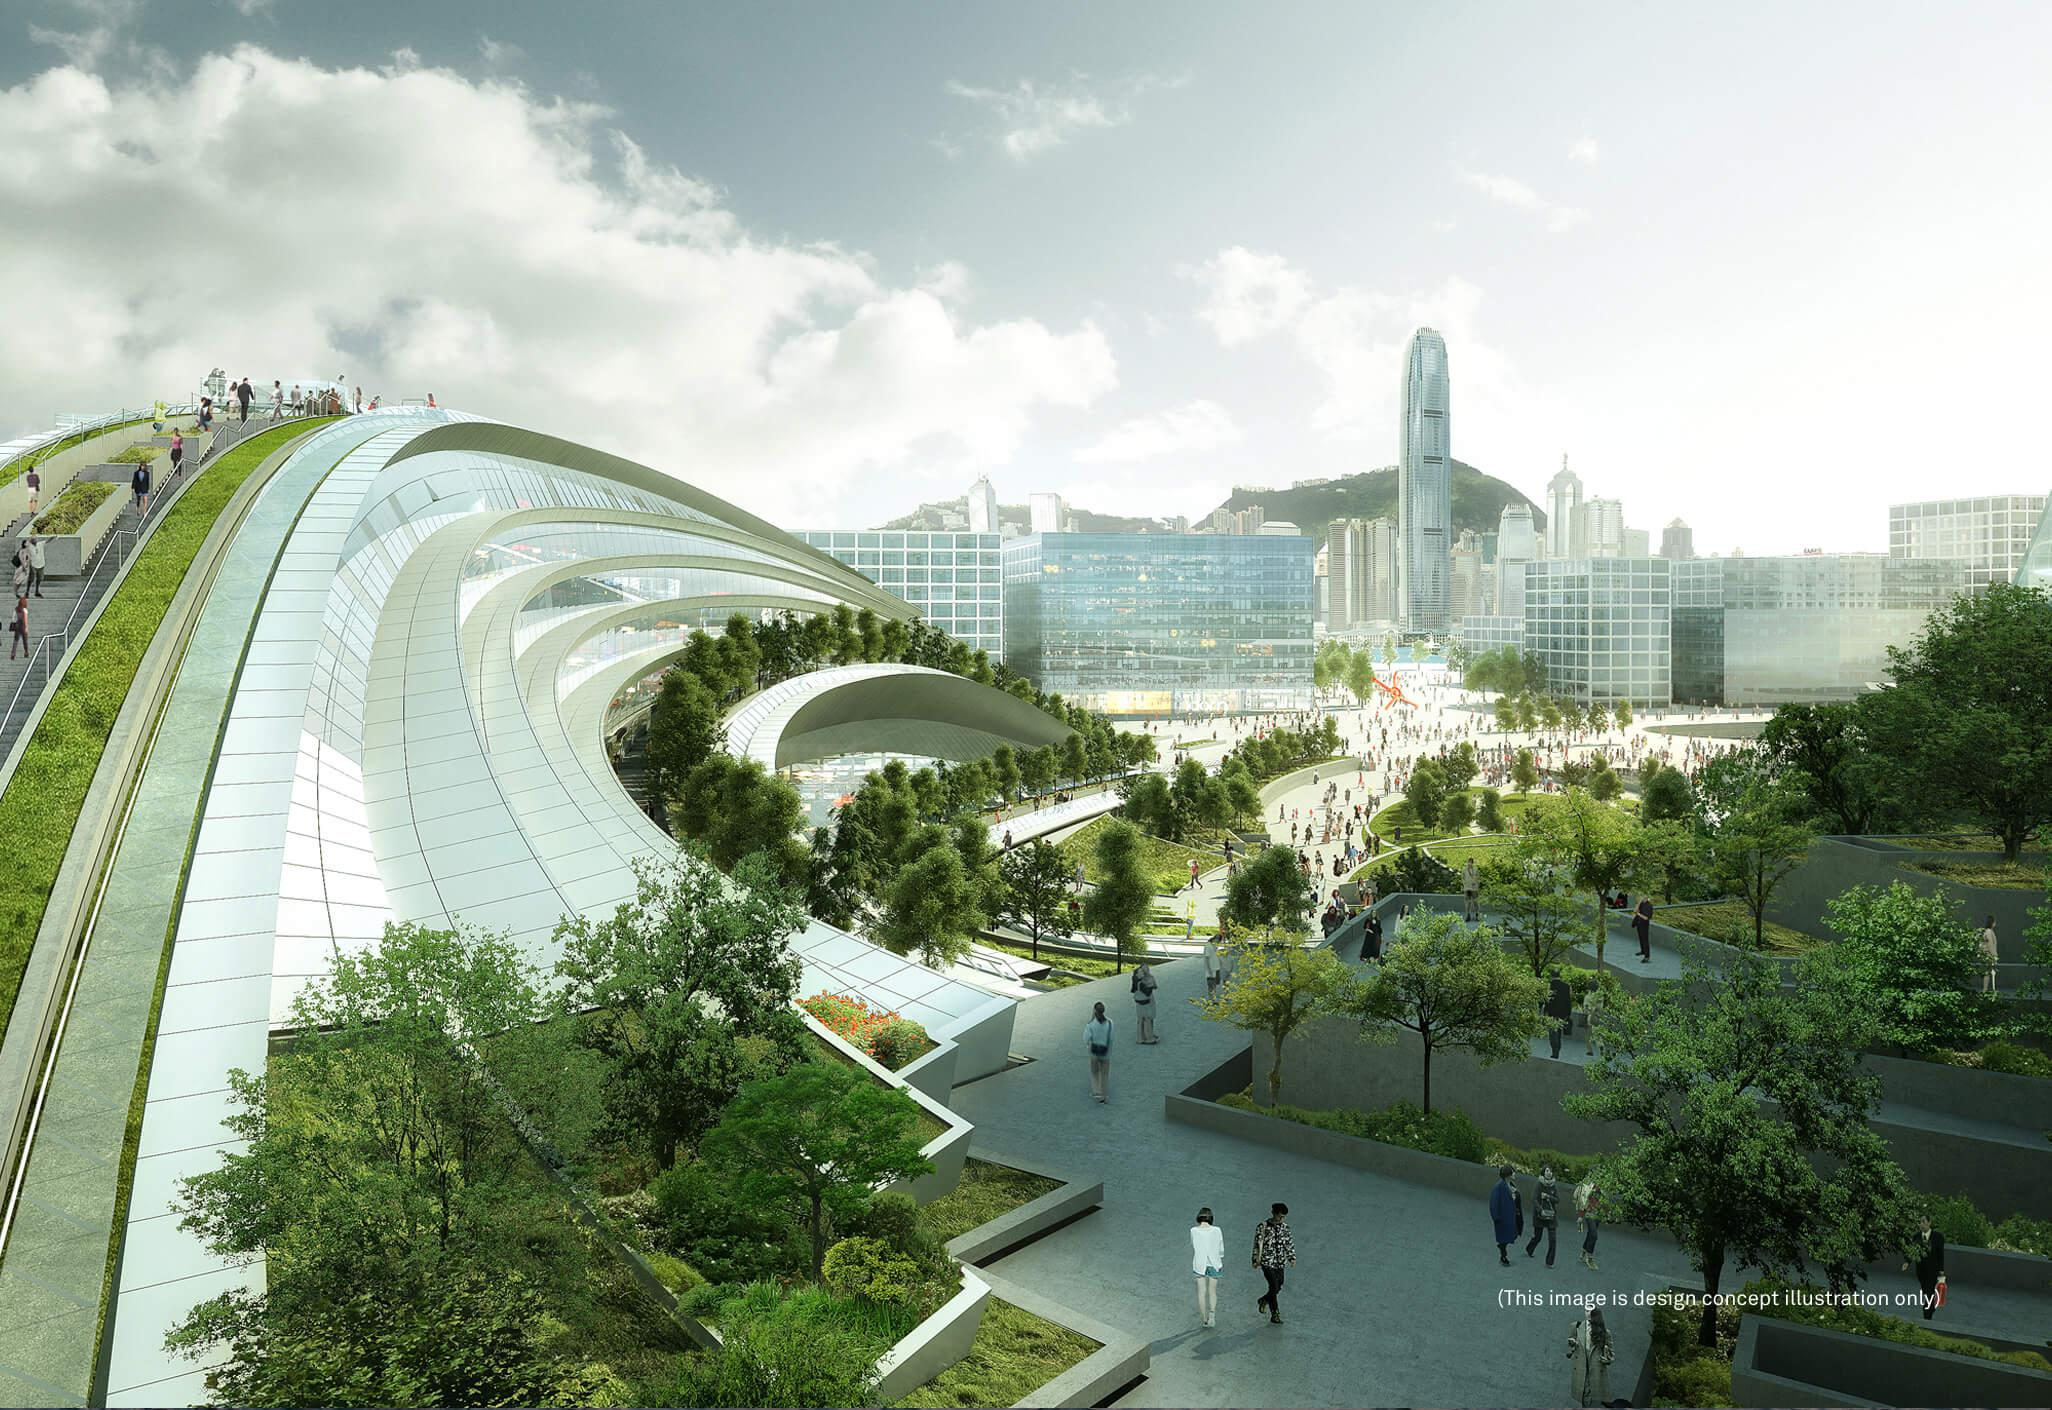 The West Kowloon Terminus Under The Hong Kong Section Of